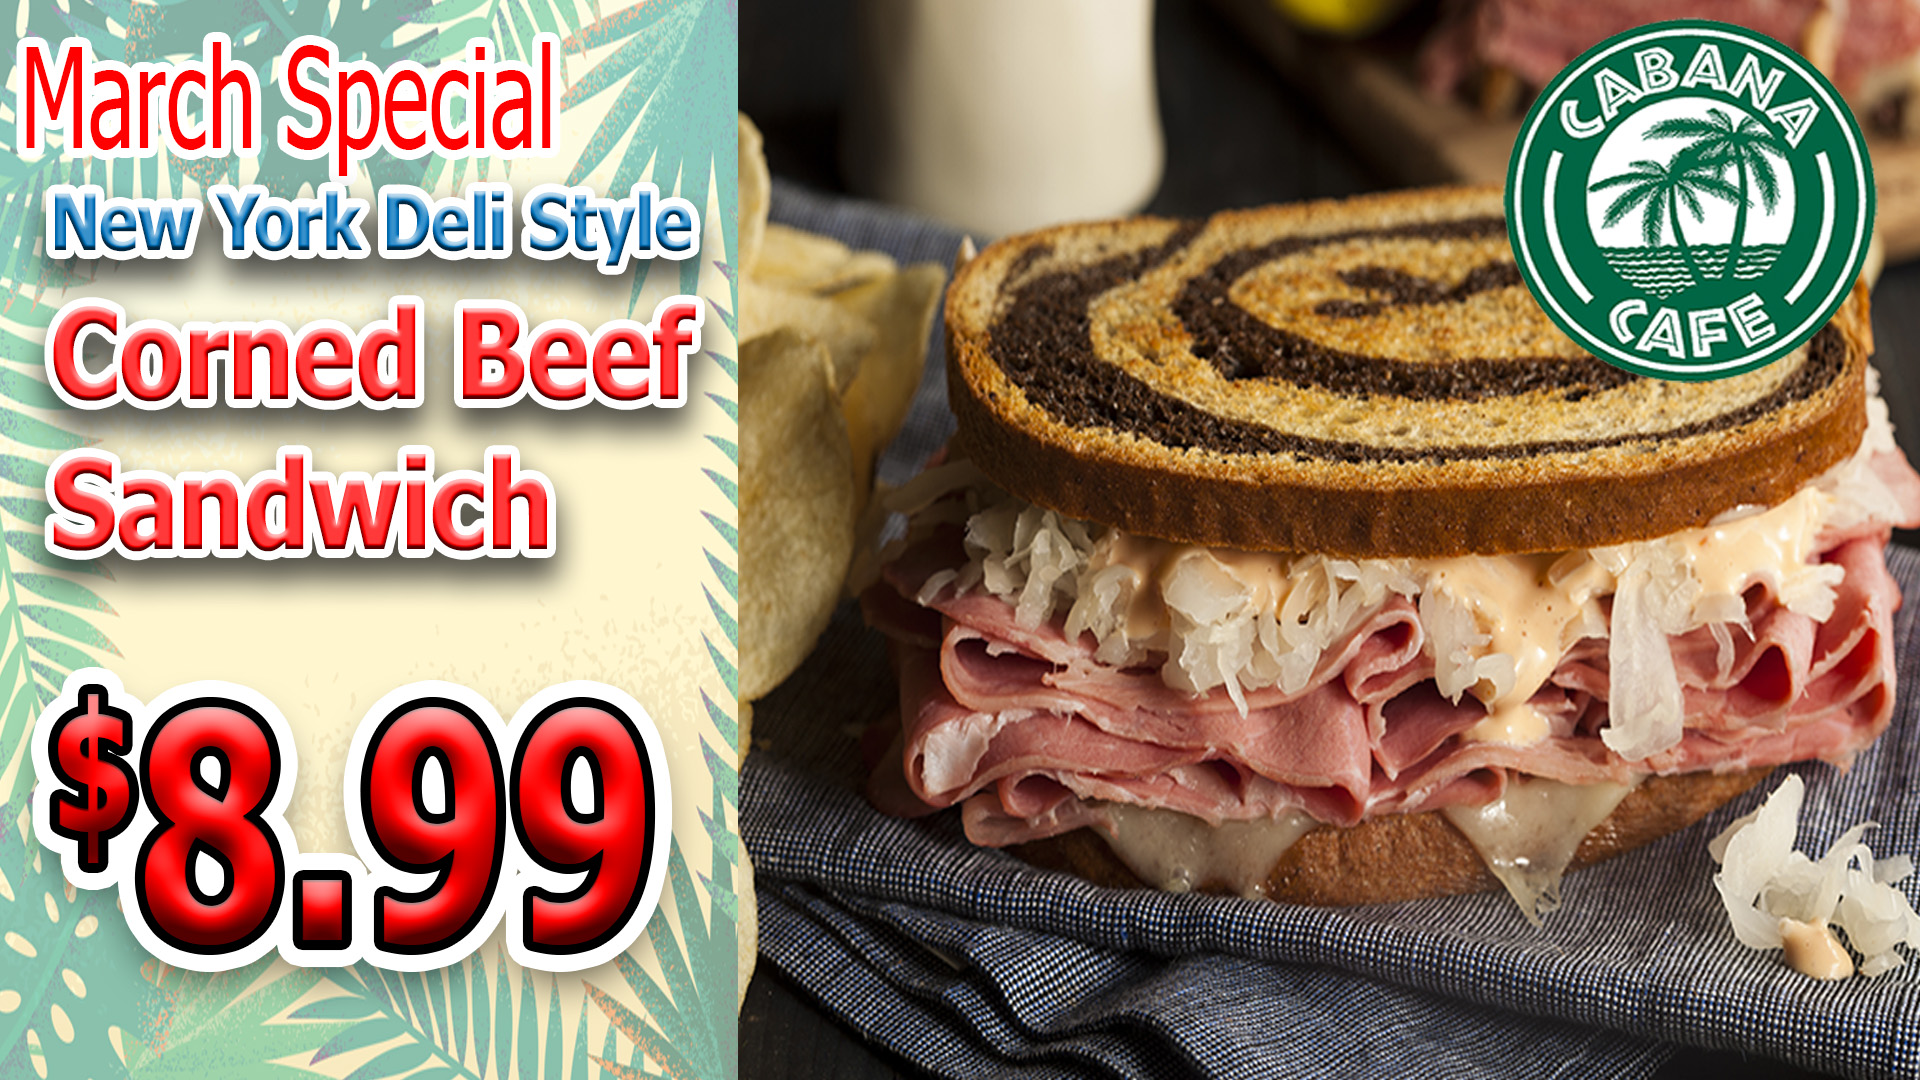 Cabana New York Deli Style Corned Beef Sandwich Special- only $8.99